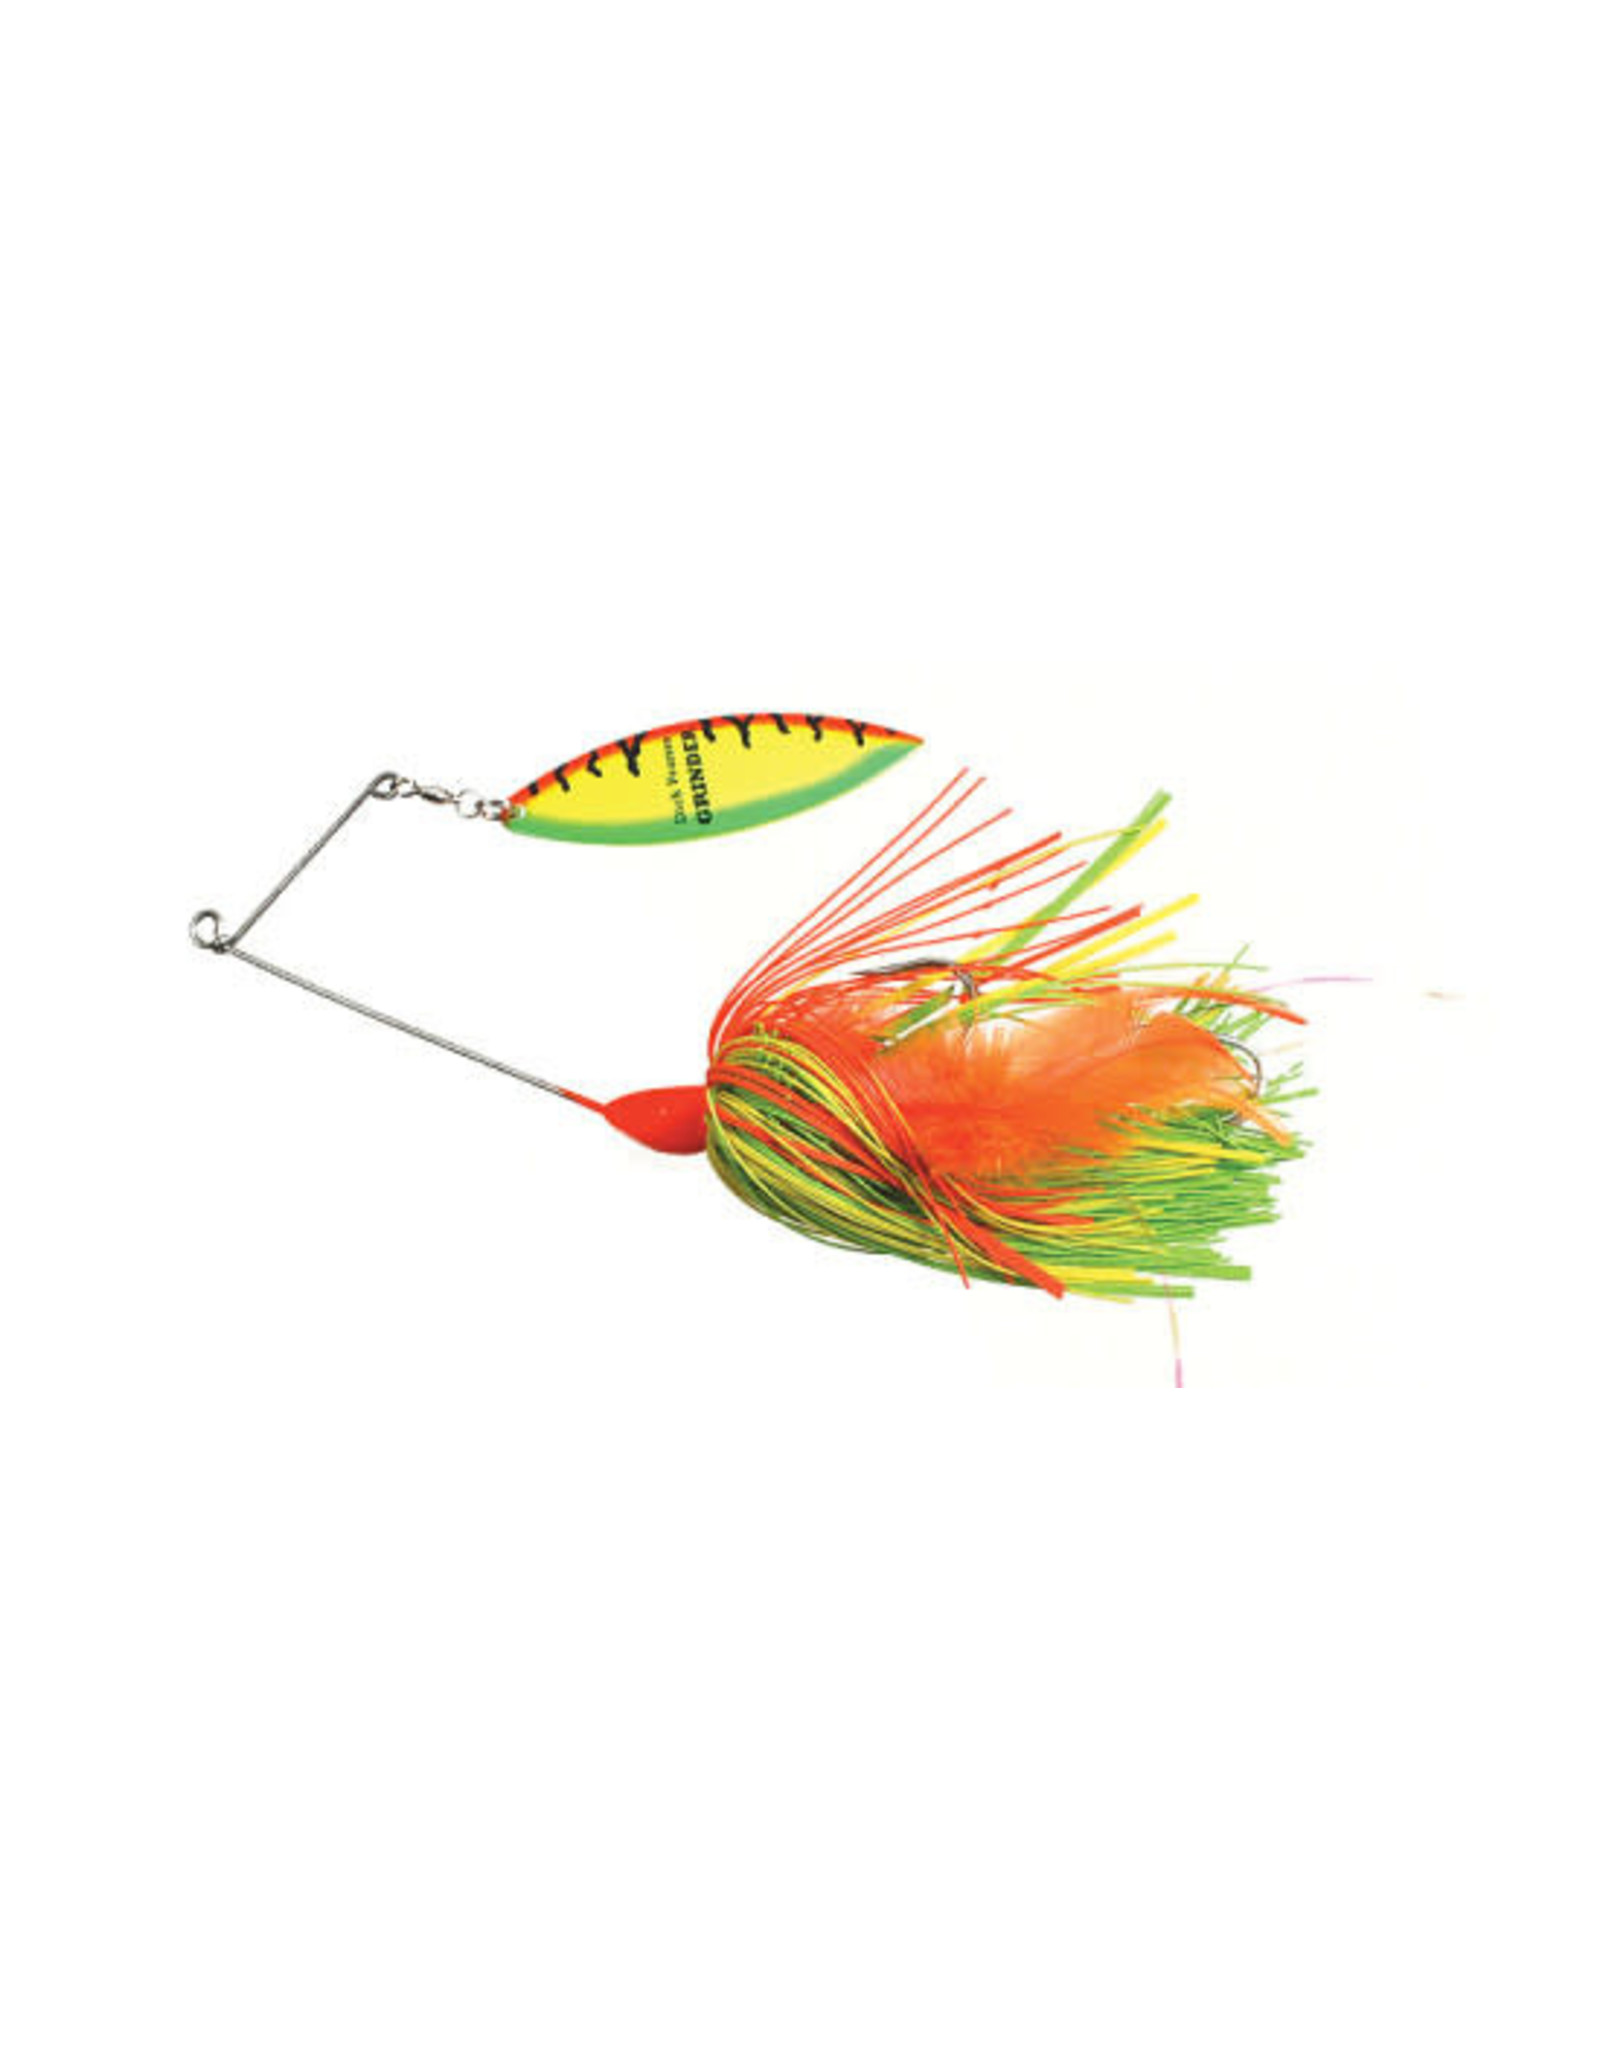 Esox Research Company Pearson's Grinder